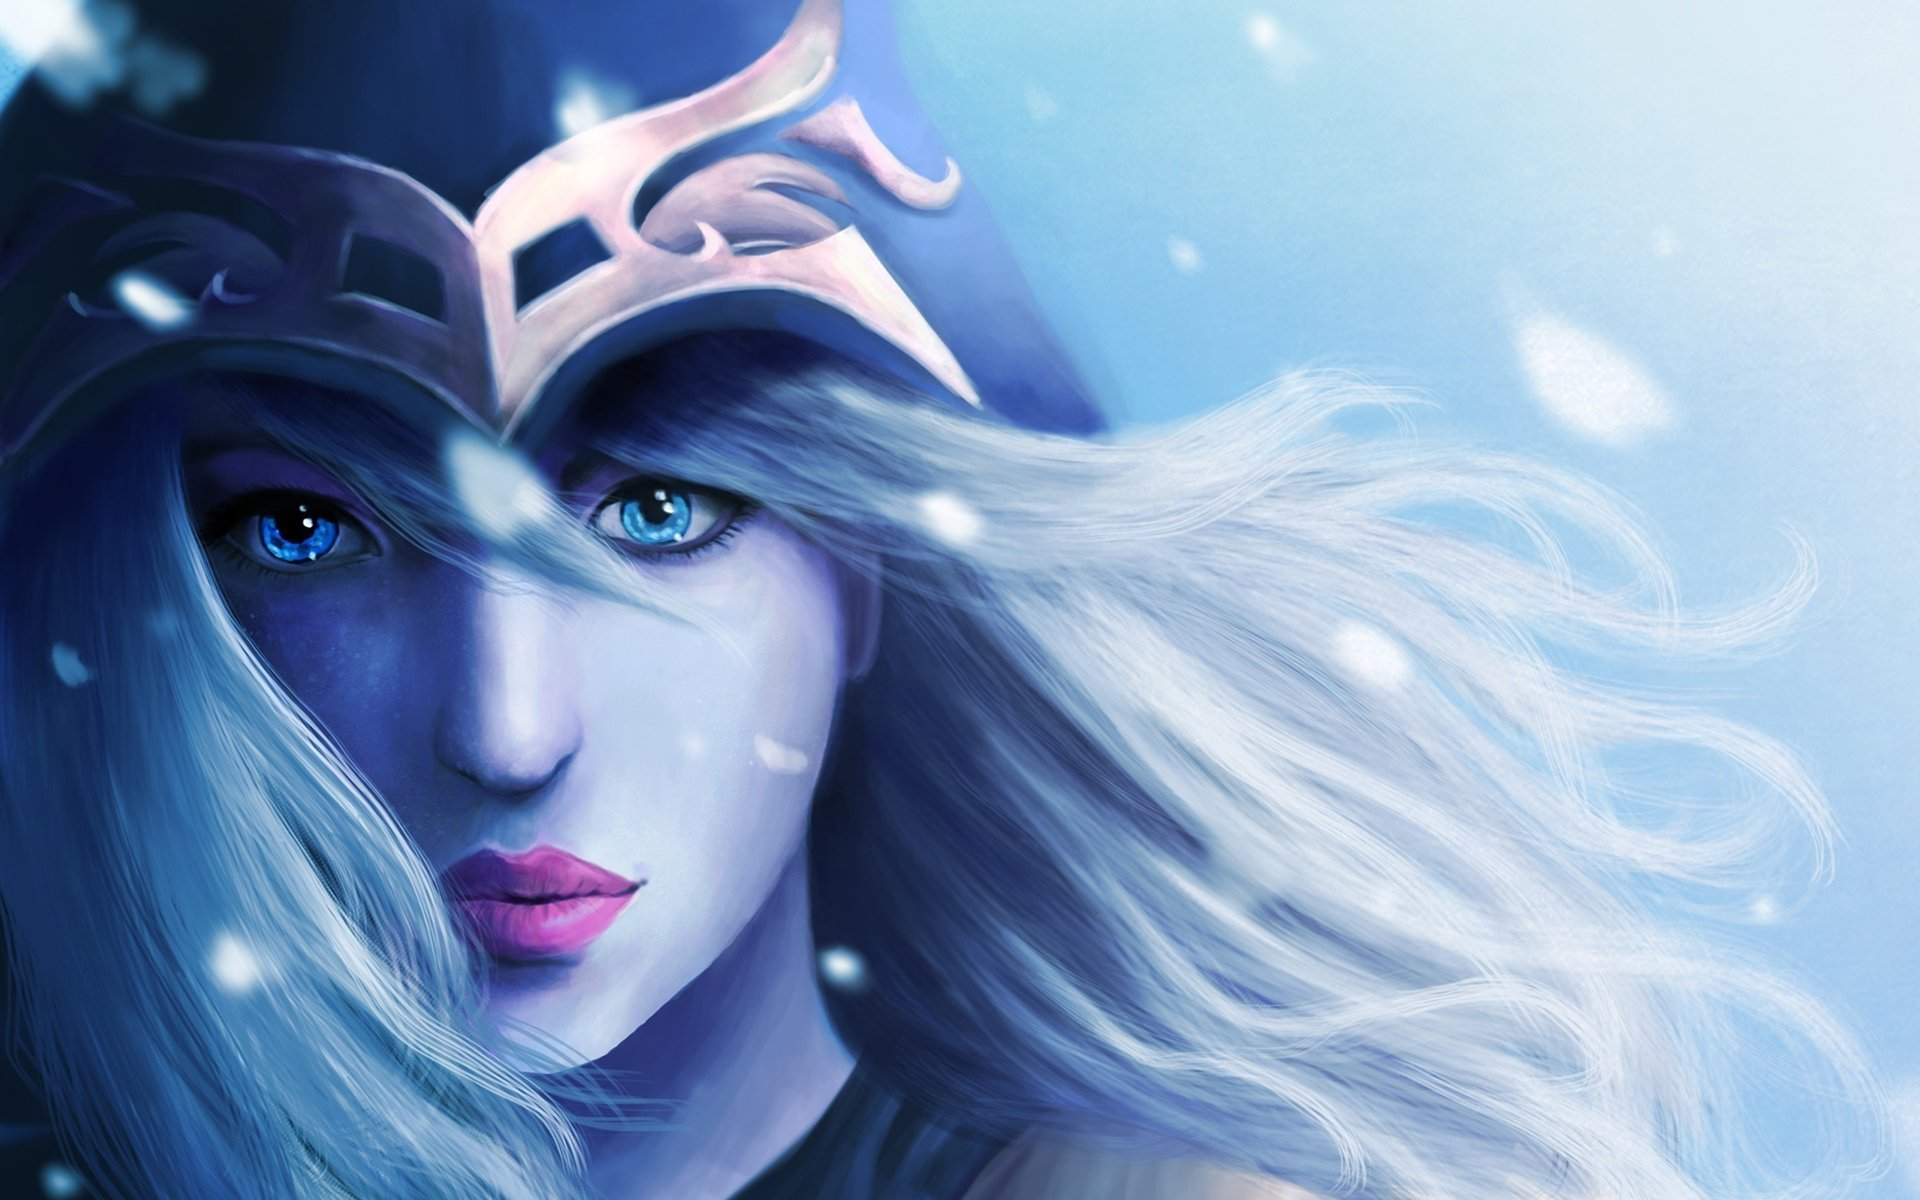 ashe-art-league-of-legends-wallpaper-1920x1200